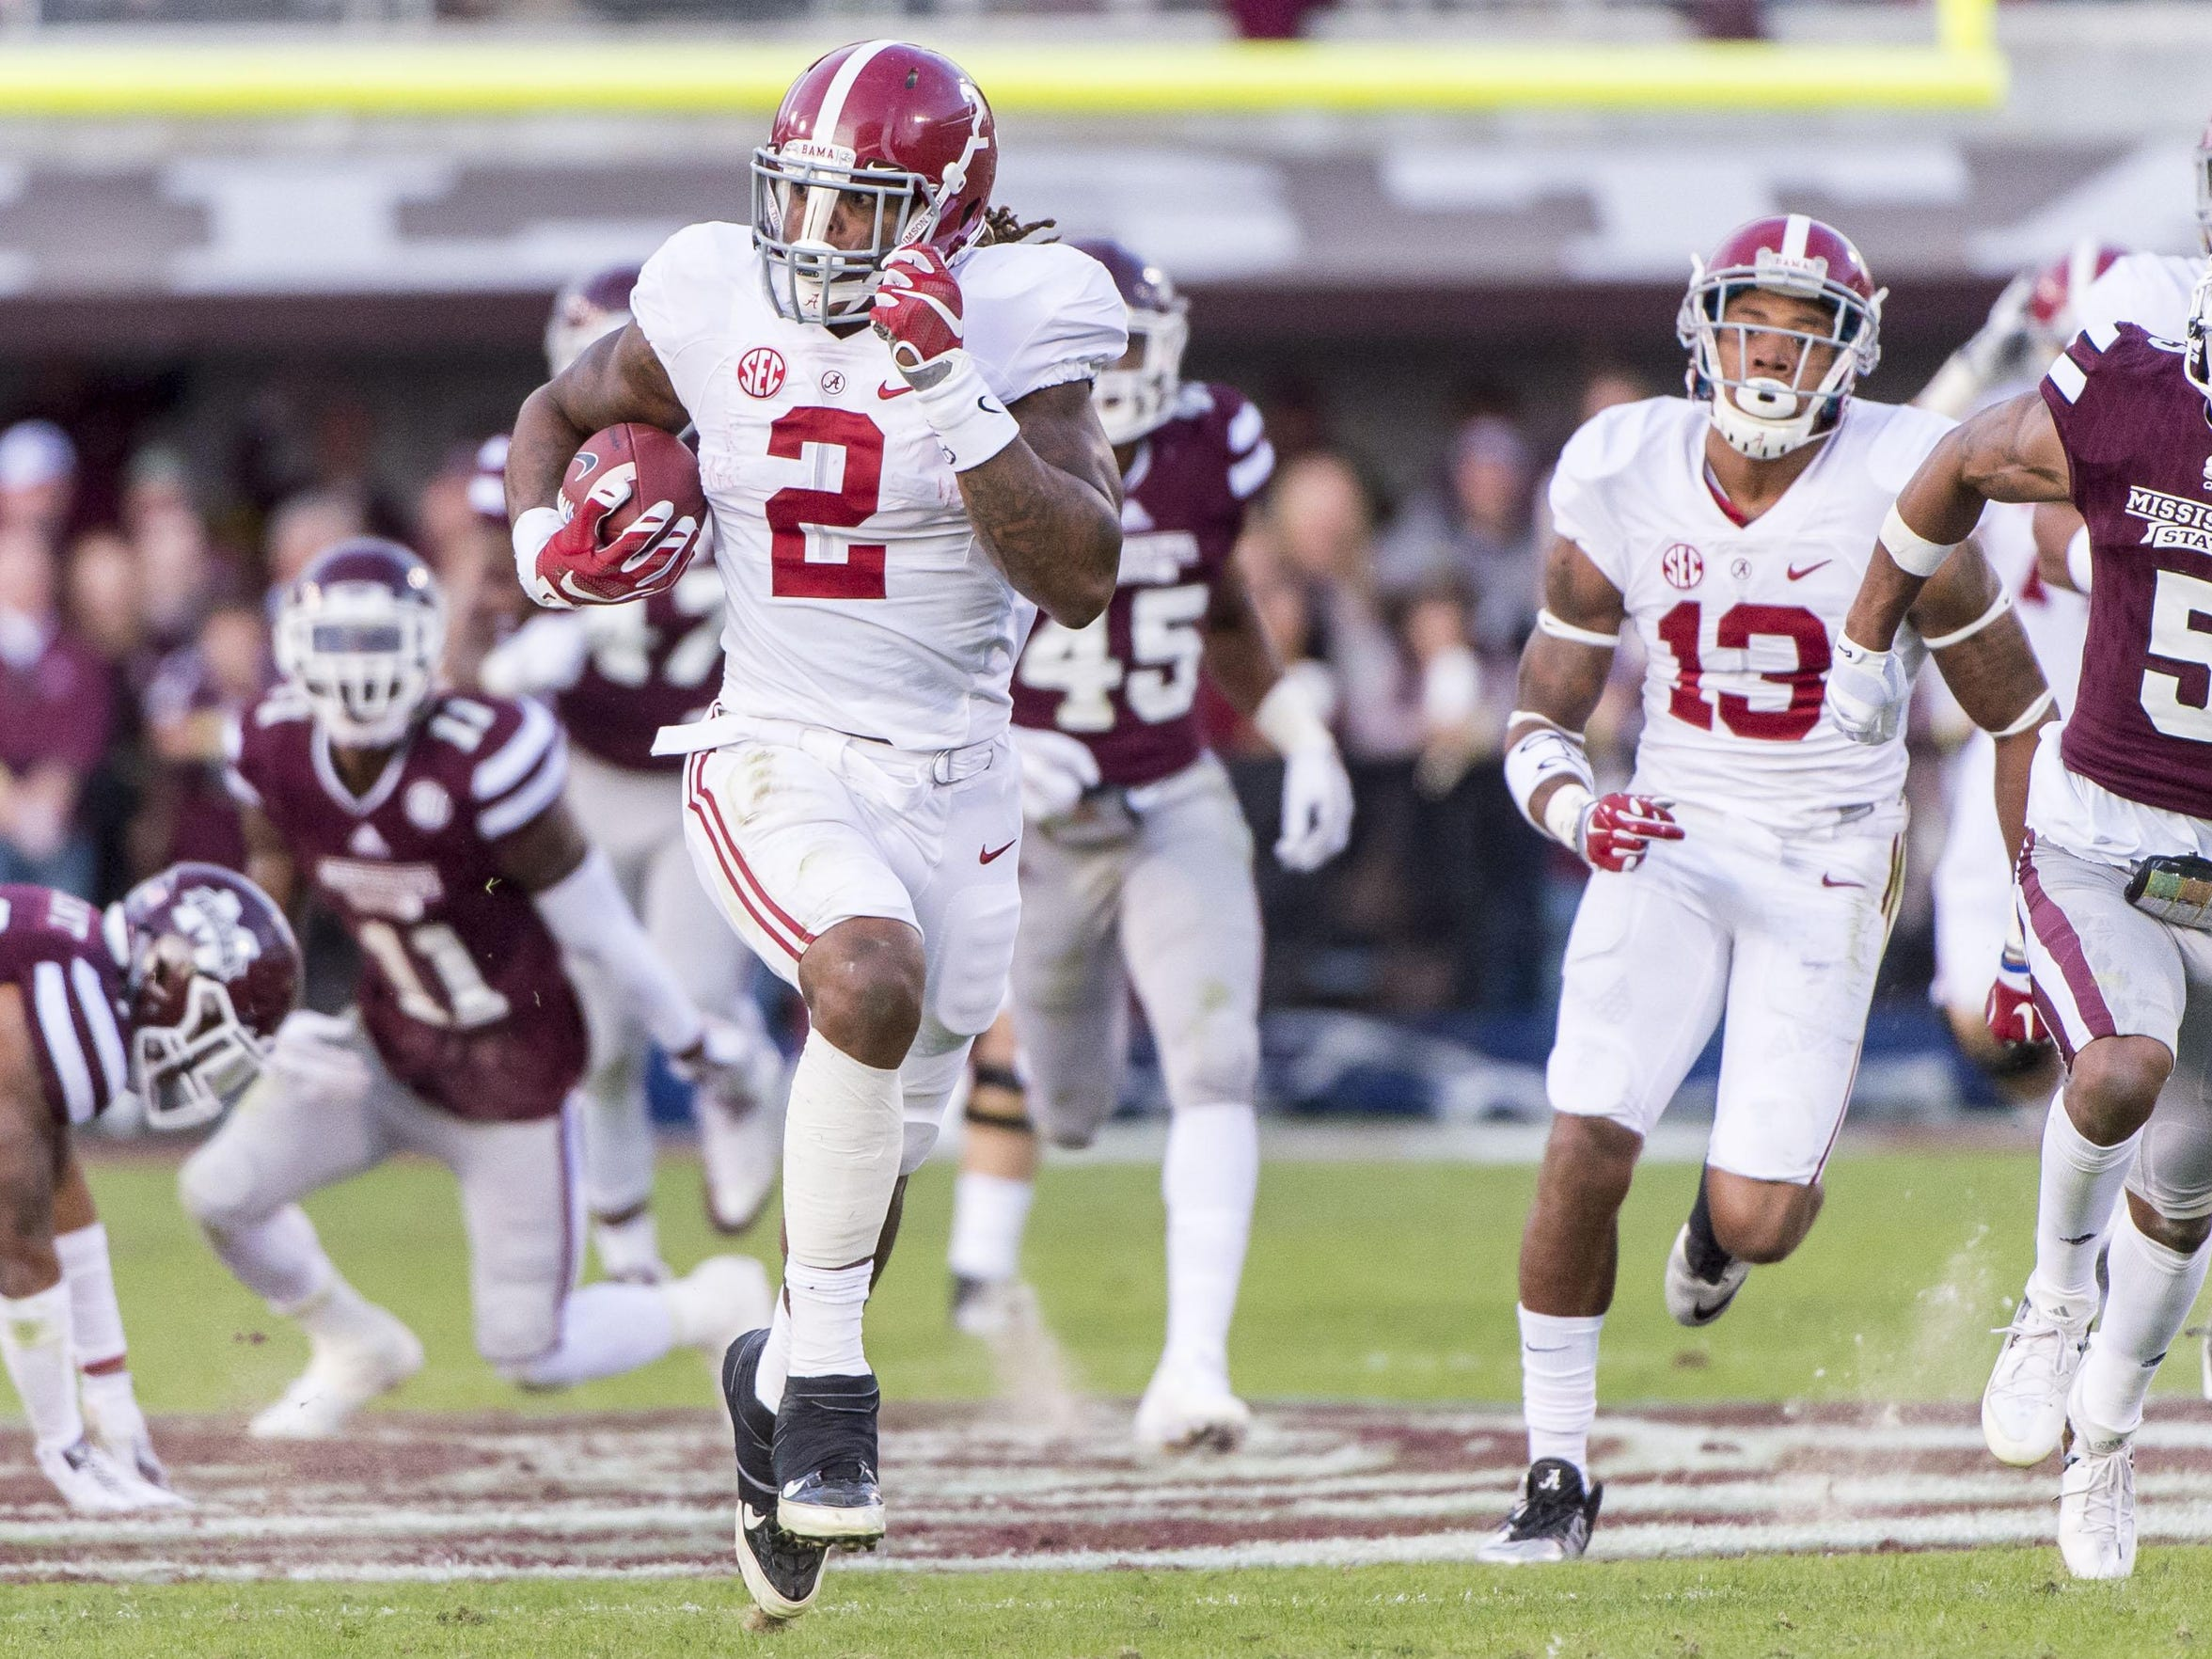 Alabama running back Derrick Henry takes off on a 74-yard touchdown run during the second quarter against Mississippi State on Saturday at Davis Wade Stadium in Starkville, Miss.